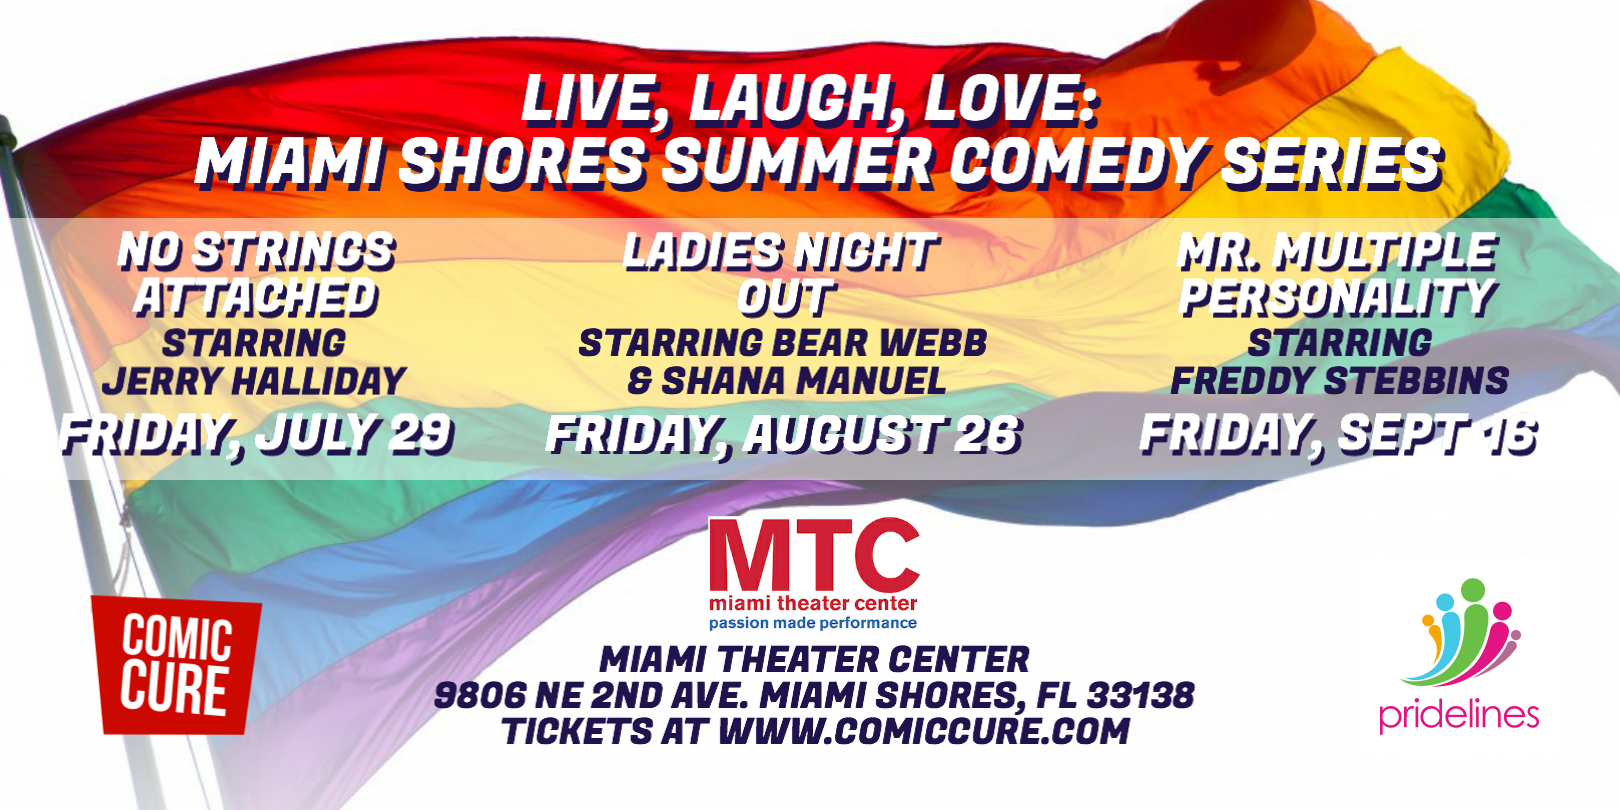 LIVE, LAUGH, LOVE: Miami Shores Summer Comedy Series